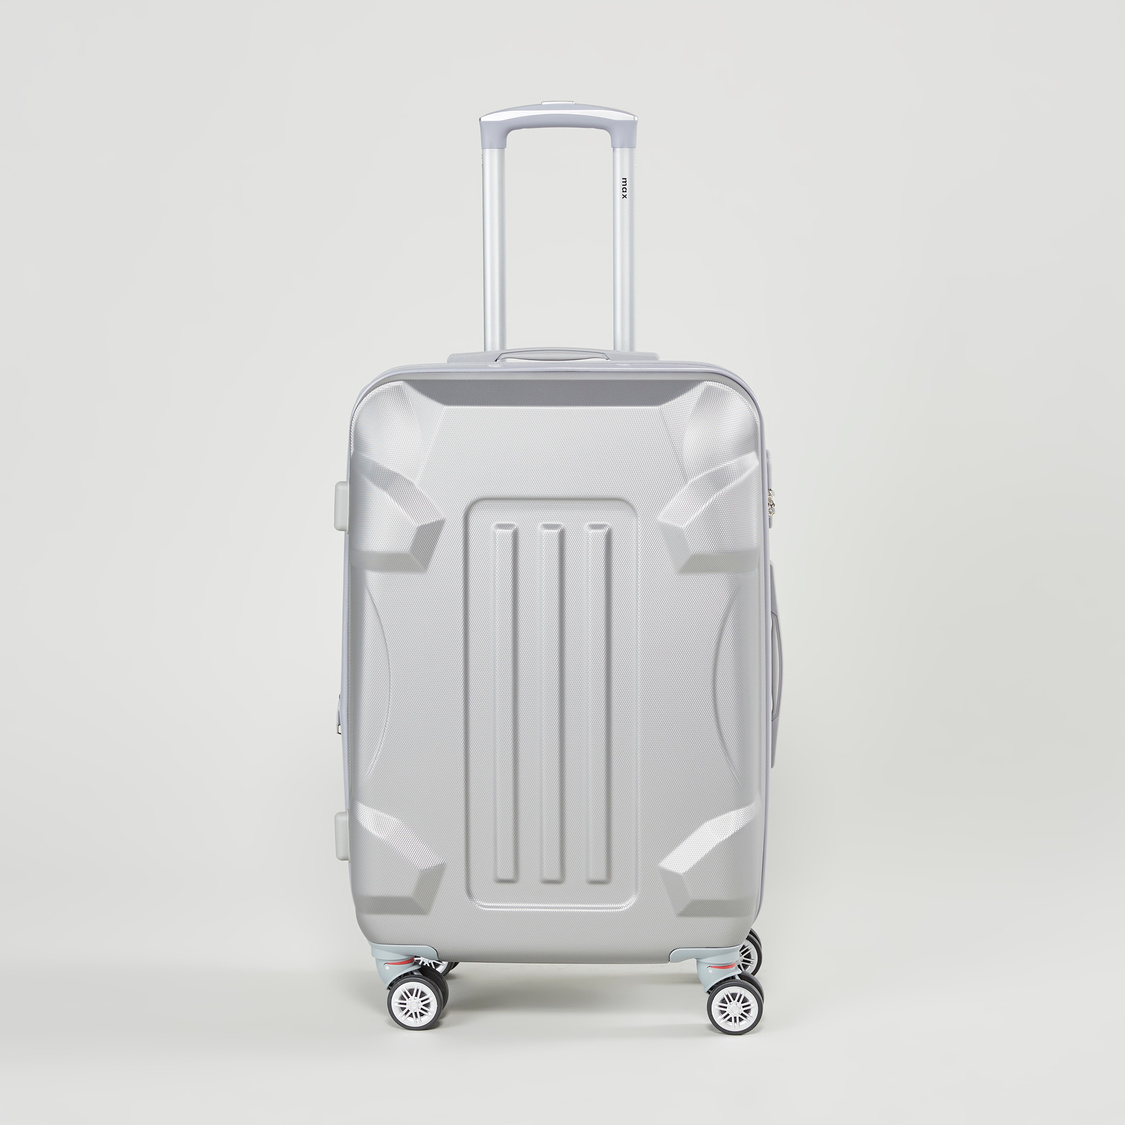 Textured Hard Case Luggage with Retractable Handle - 41x26x59 cms